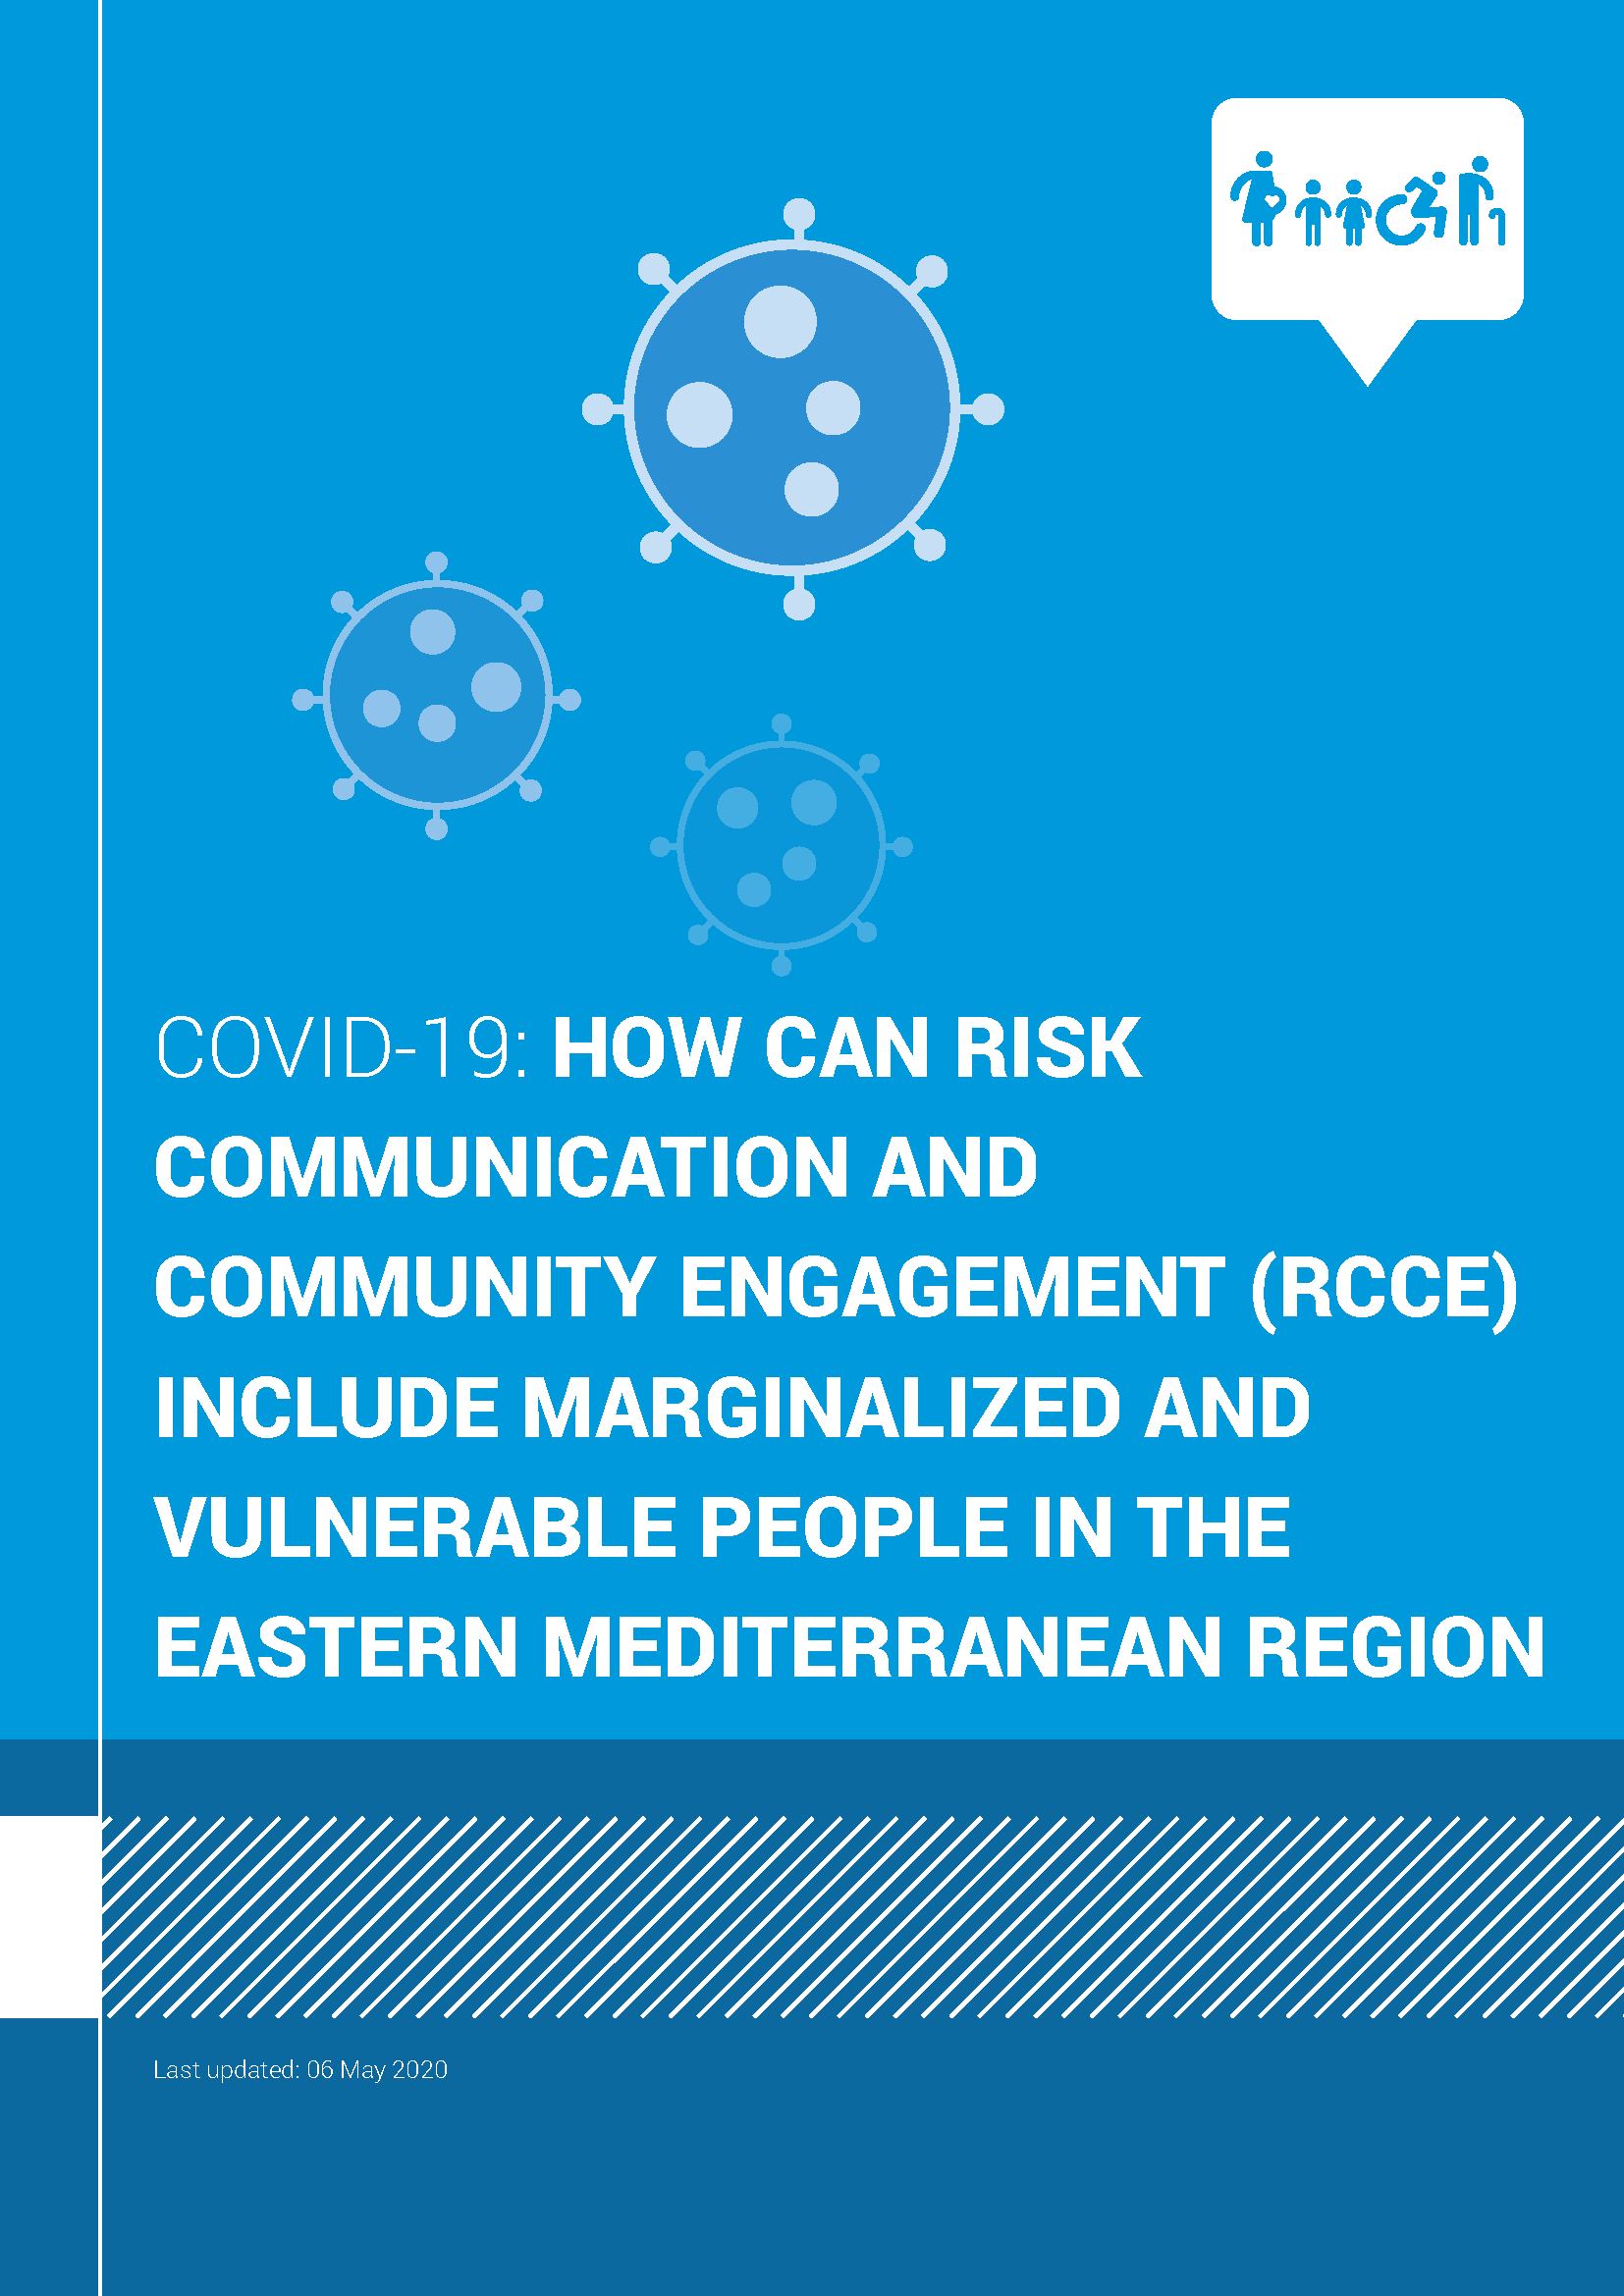 How Can Risk Communication and Community Engagement (RCCE) include marginalized and vulnerable people in the Eastern Mediterranean Region